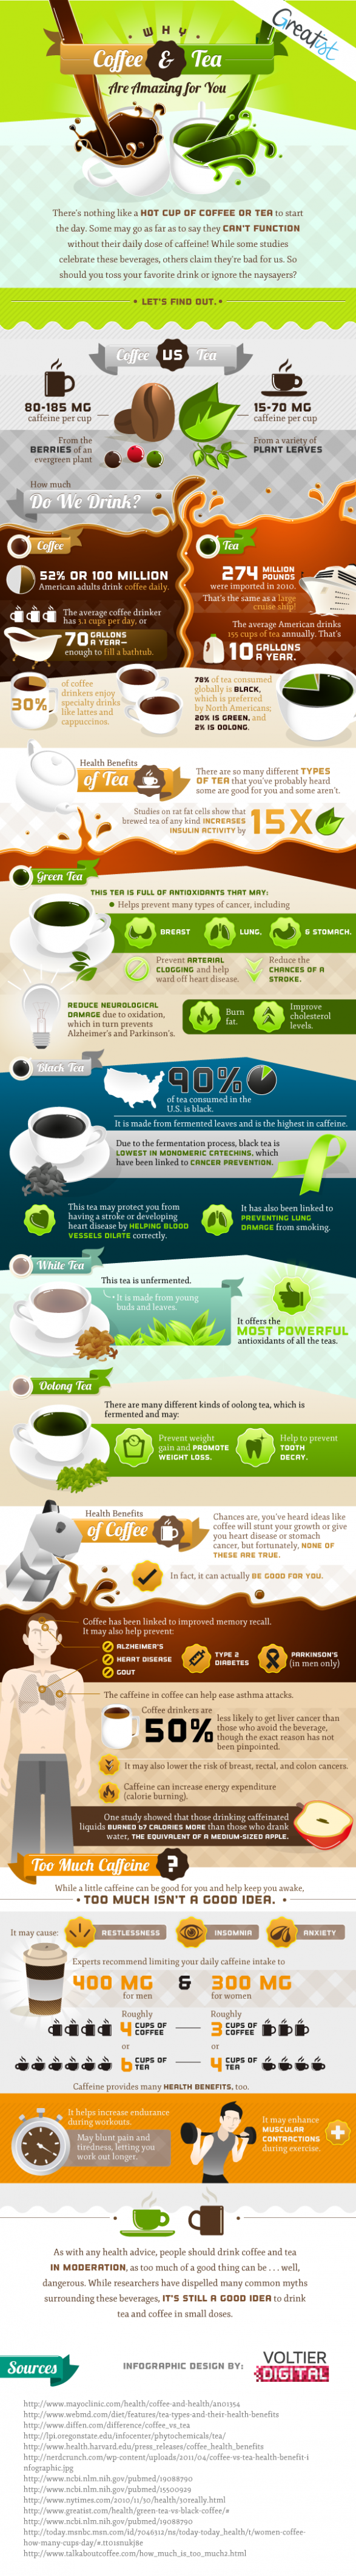 Why Coffee & Tea are Amazing For You